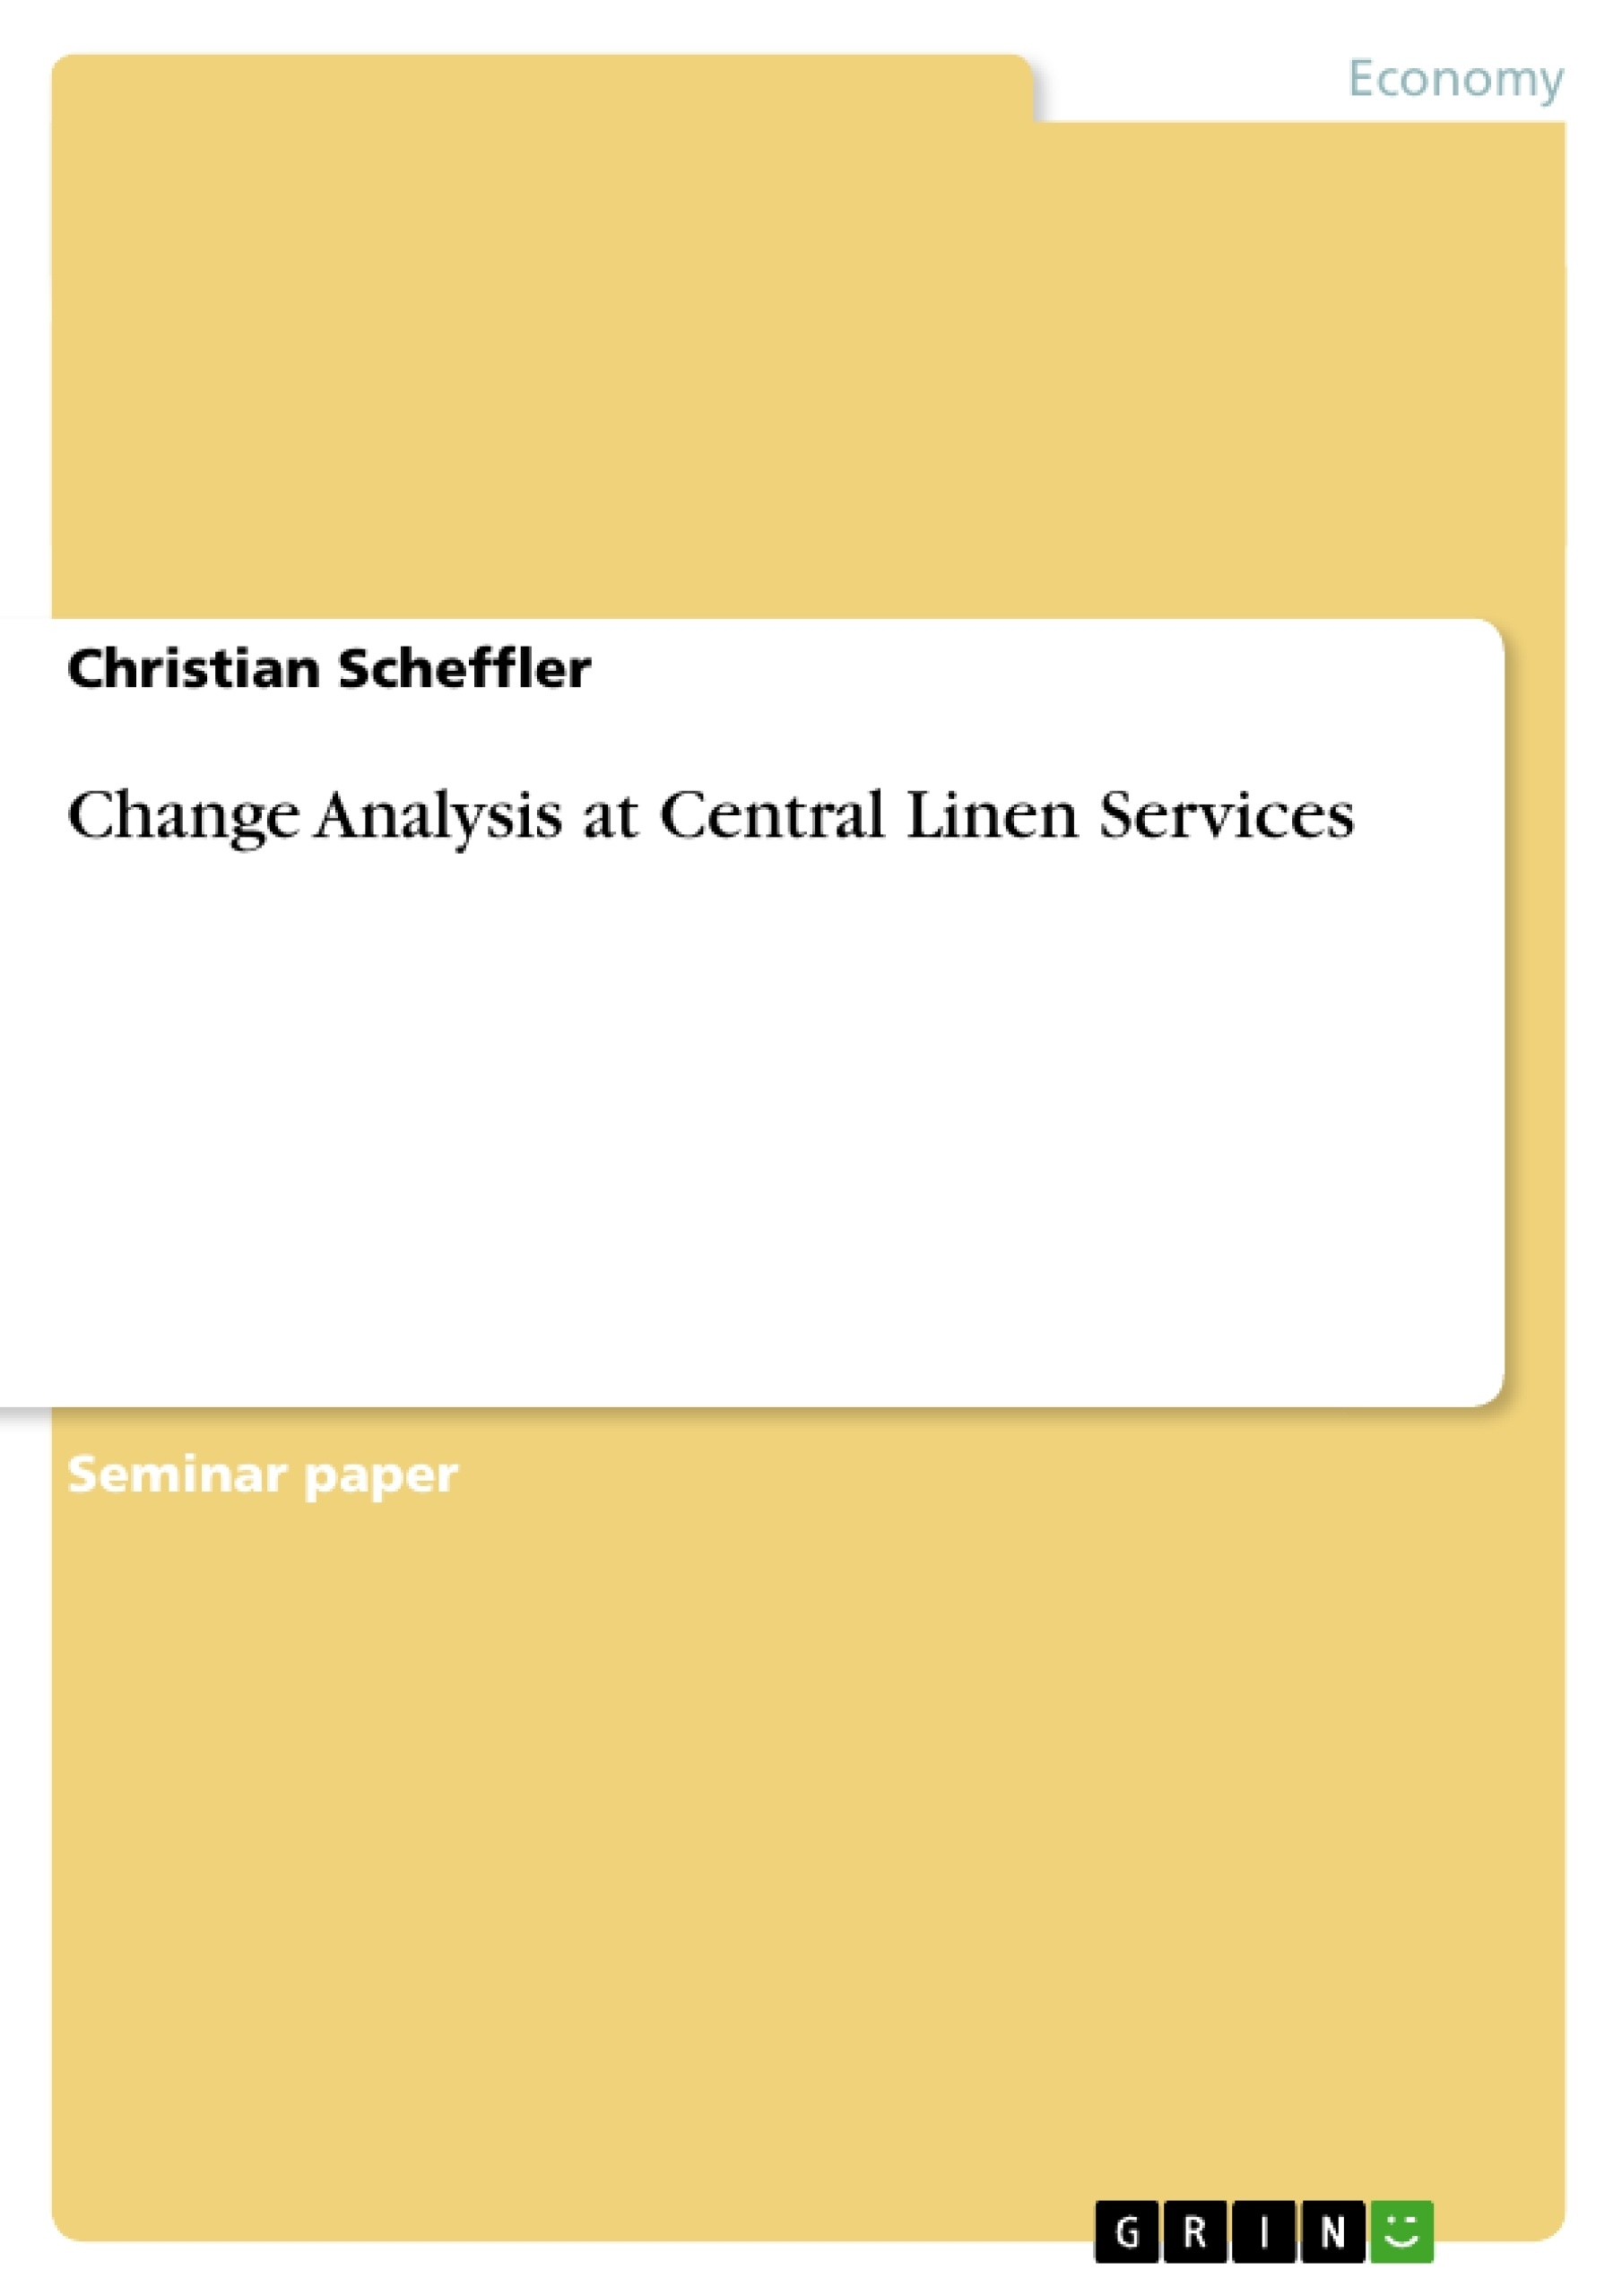 Title: Change Analysis at Central Linen Services